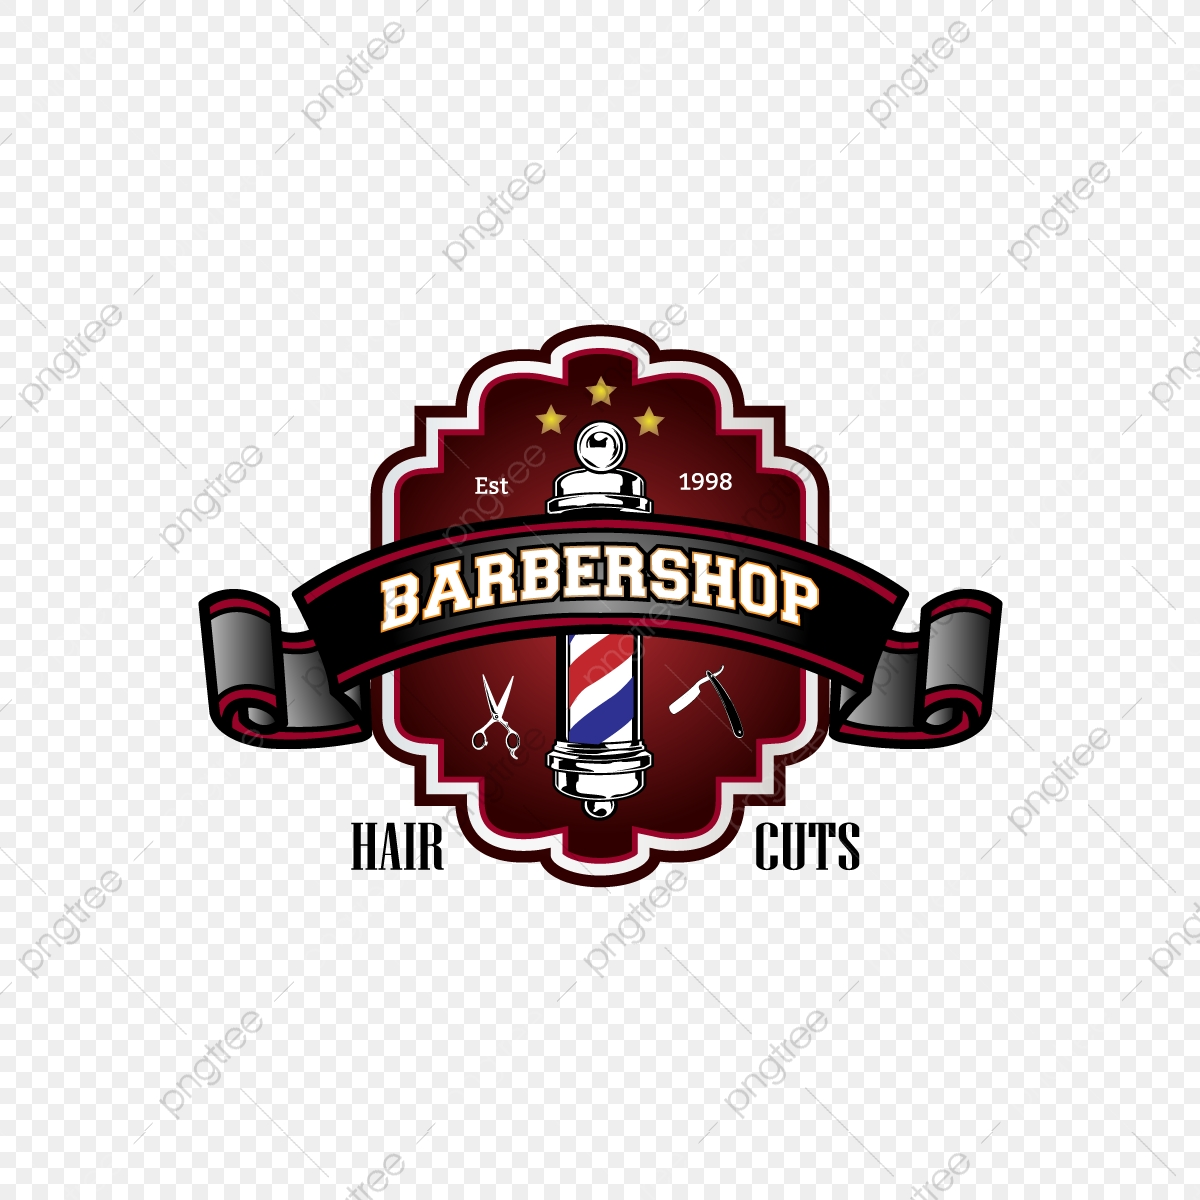 Barbershop Hair Cuts And Symbol With Red And Black Effect.